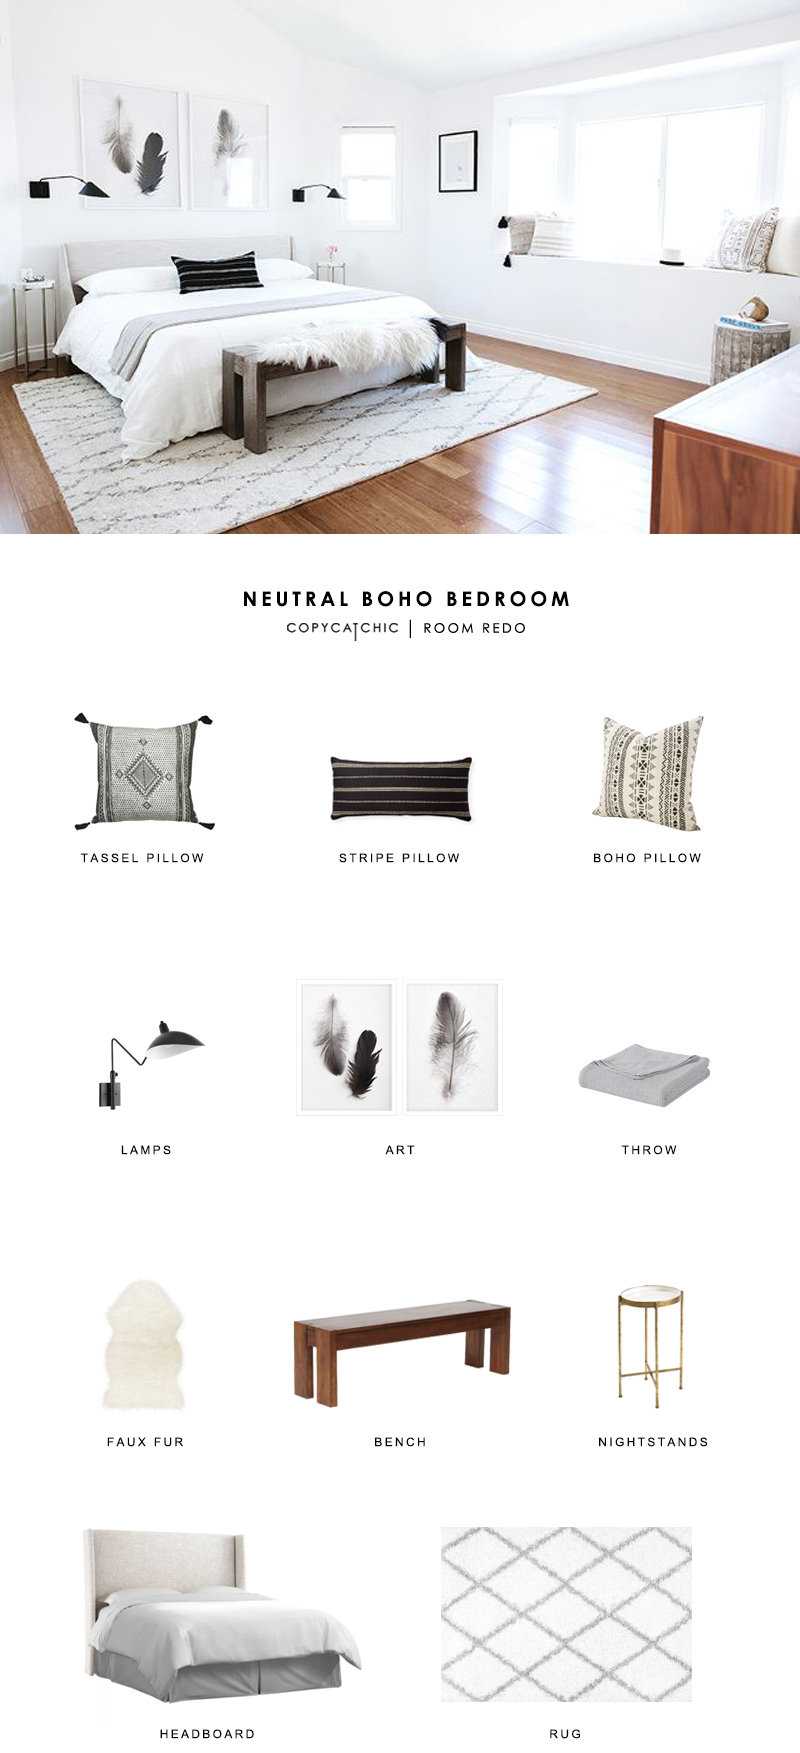 This neutral boho bedroom by Anne Sage gets recreated for less by copycatchic luxe living for less budget home decor and design room redos